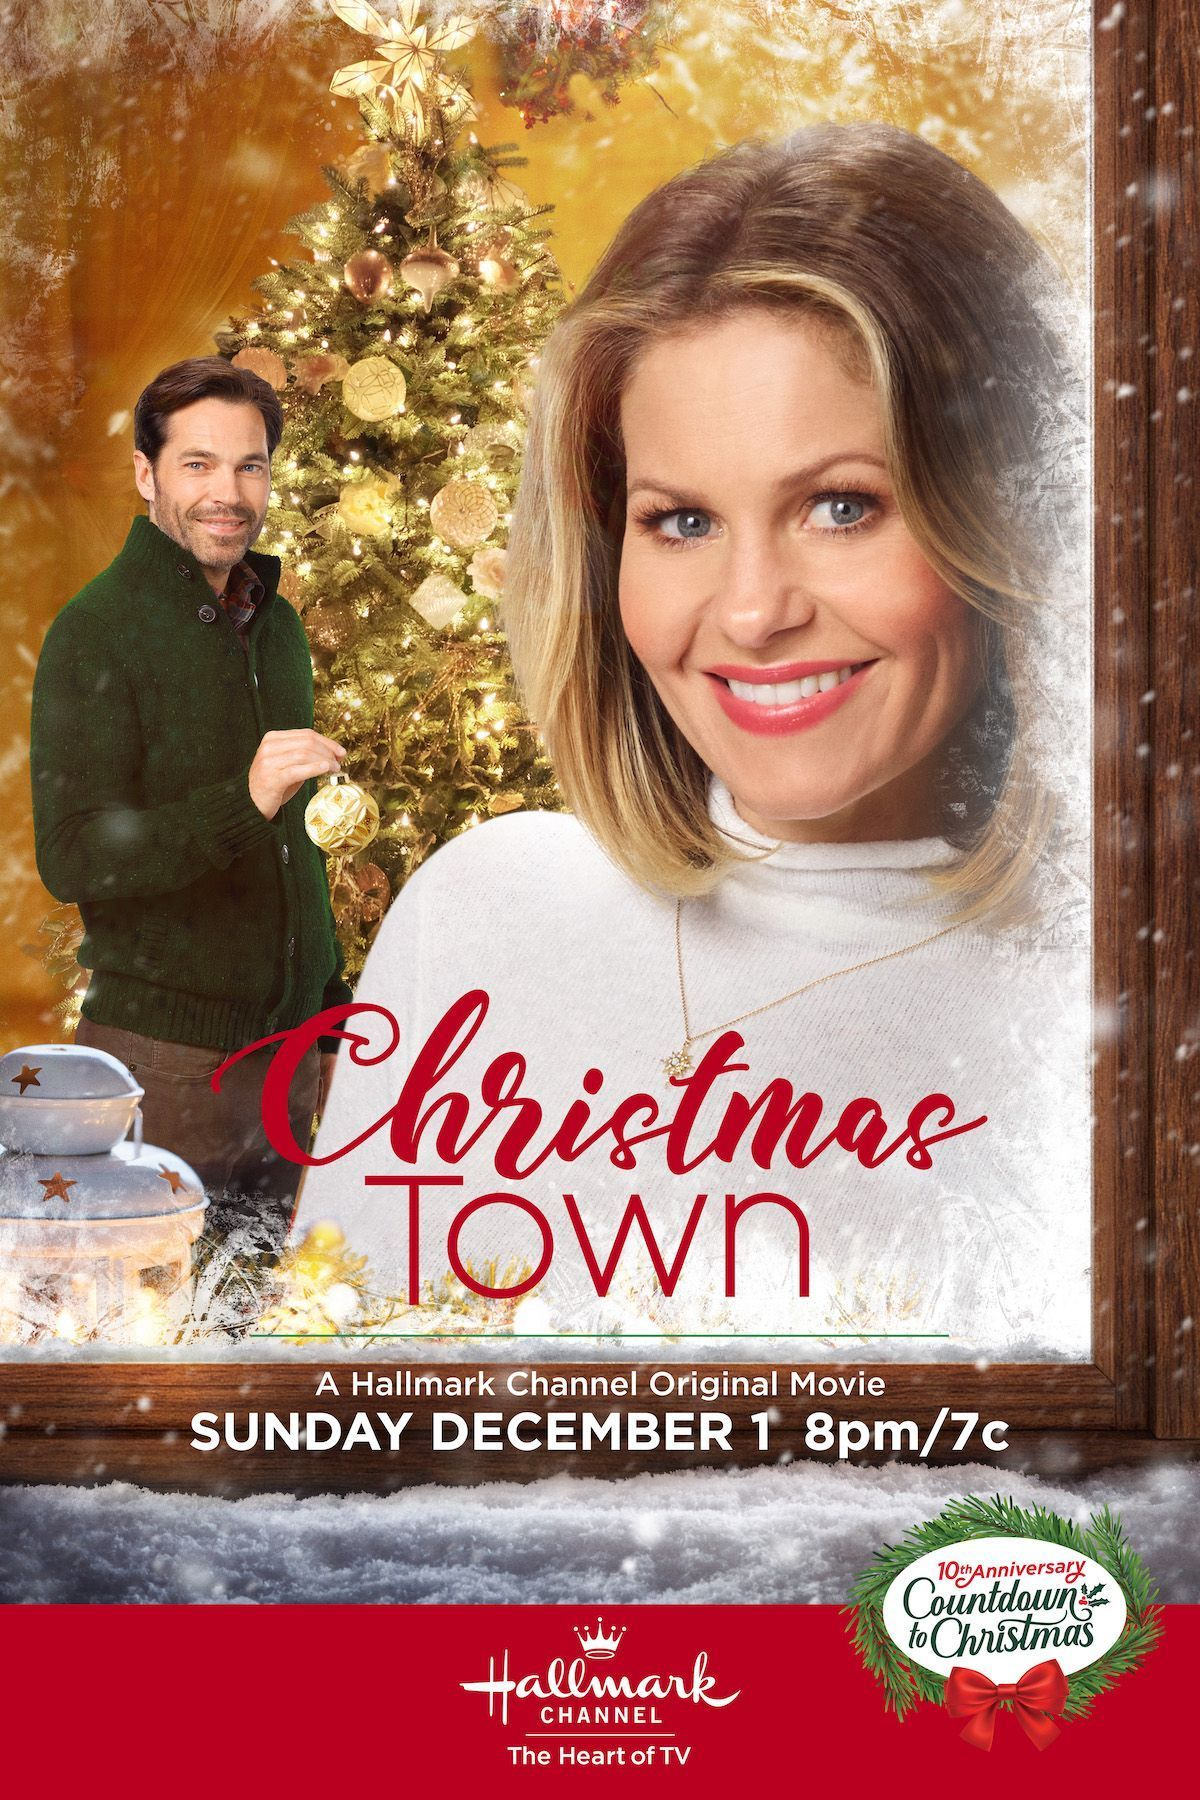 Candace Cameron Bure And Tim Rozon Star In Christmas Town Premiering December 1 Hallmark Channel Christmas Movies Hallmark Christmas Movies Christmas Movies